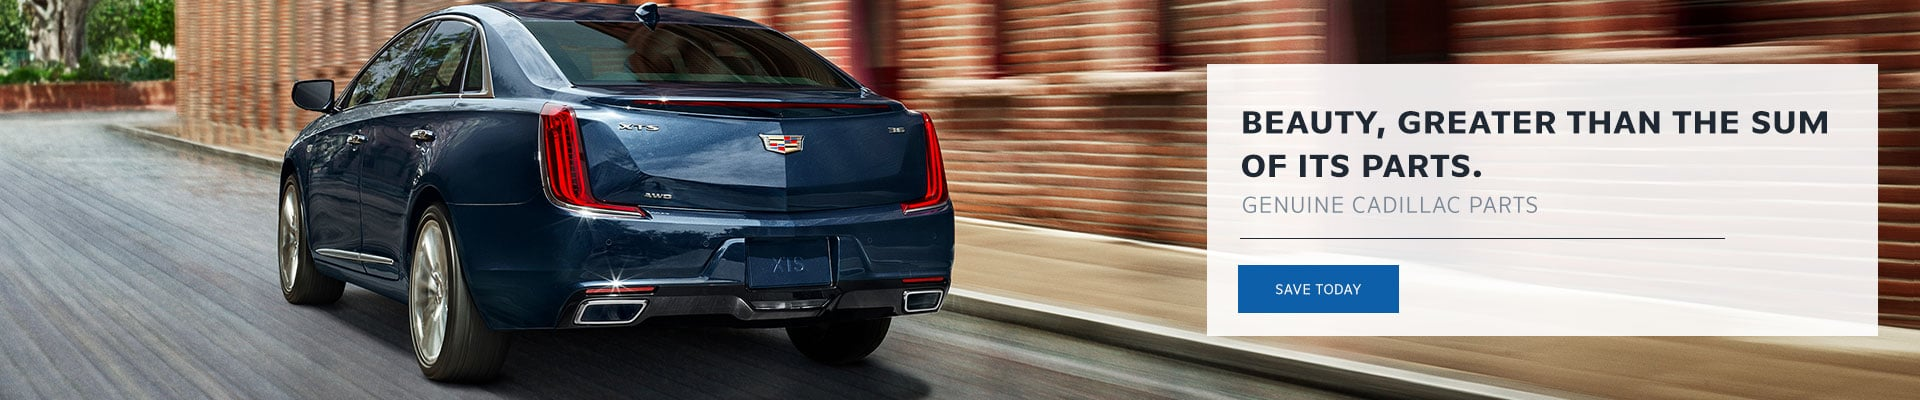 Shop Cadillac Parts & Accessories